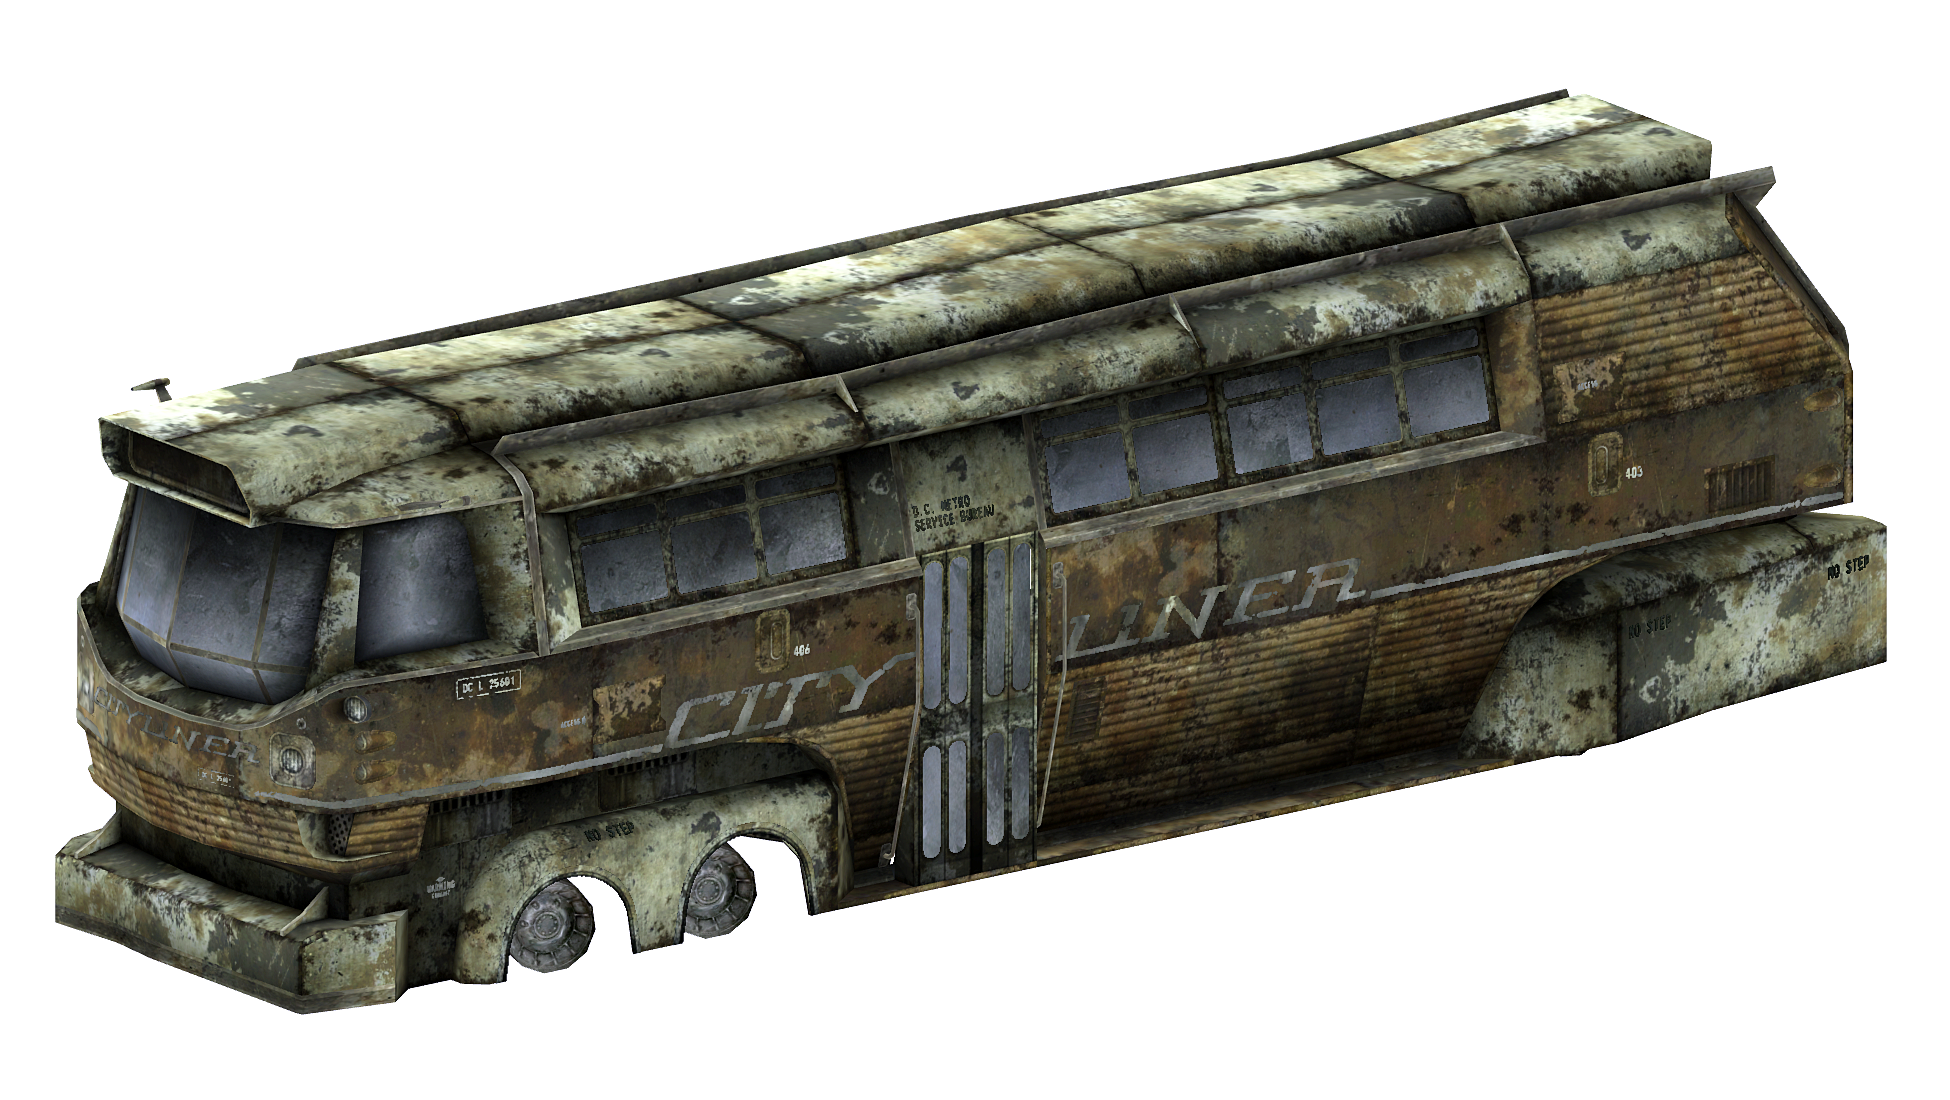 City Liner - The Fallout wiki - Fallout: New Vegas and more